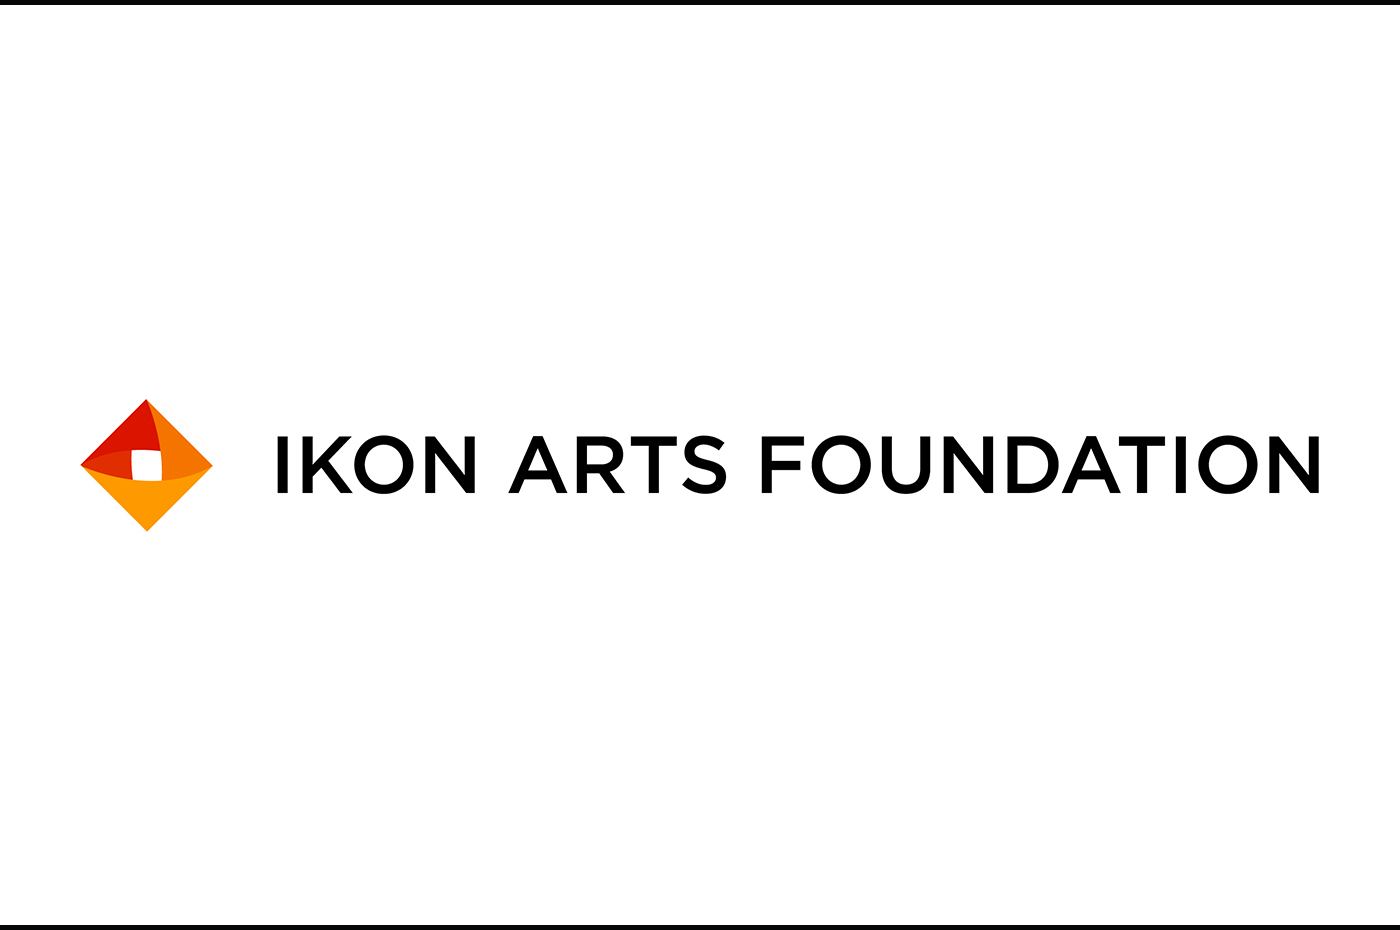 IKON ARTS FOUNDATION / BRAND AND CONTENT STRATEGY    Crafted brand positioning and visual territories that conveyed the mission of the organization, and designed editorial content themes to showcase the creative work of artists, designers, and filmmakers. Resulting in triple digit growth in user engagement and grant funding.